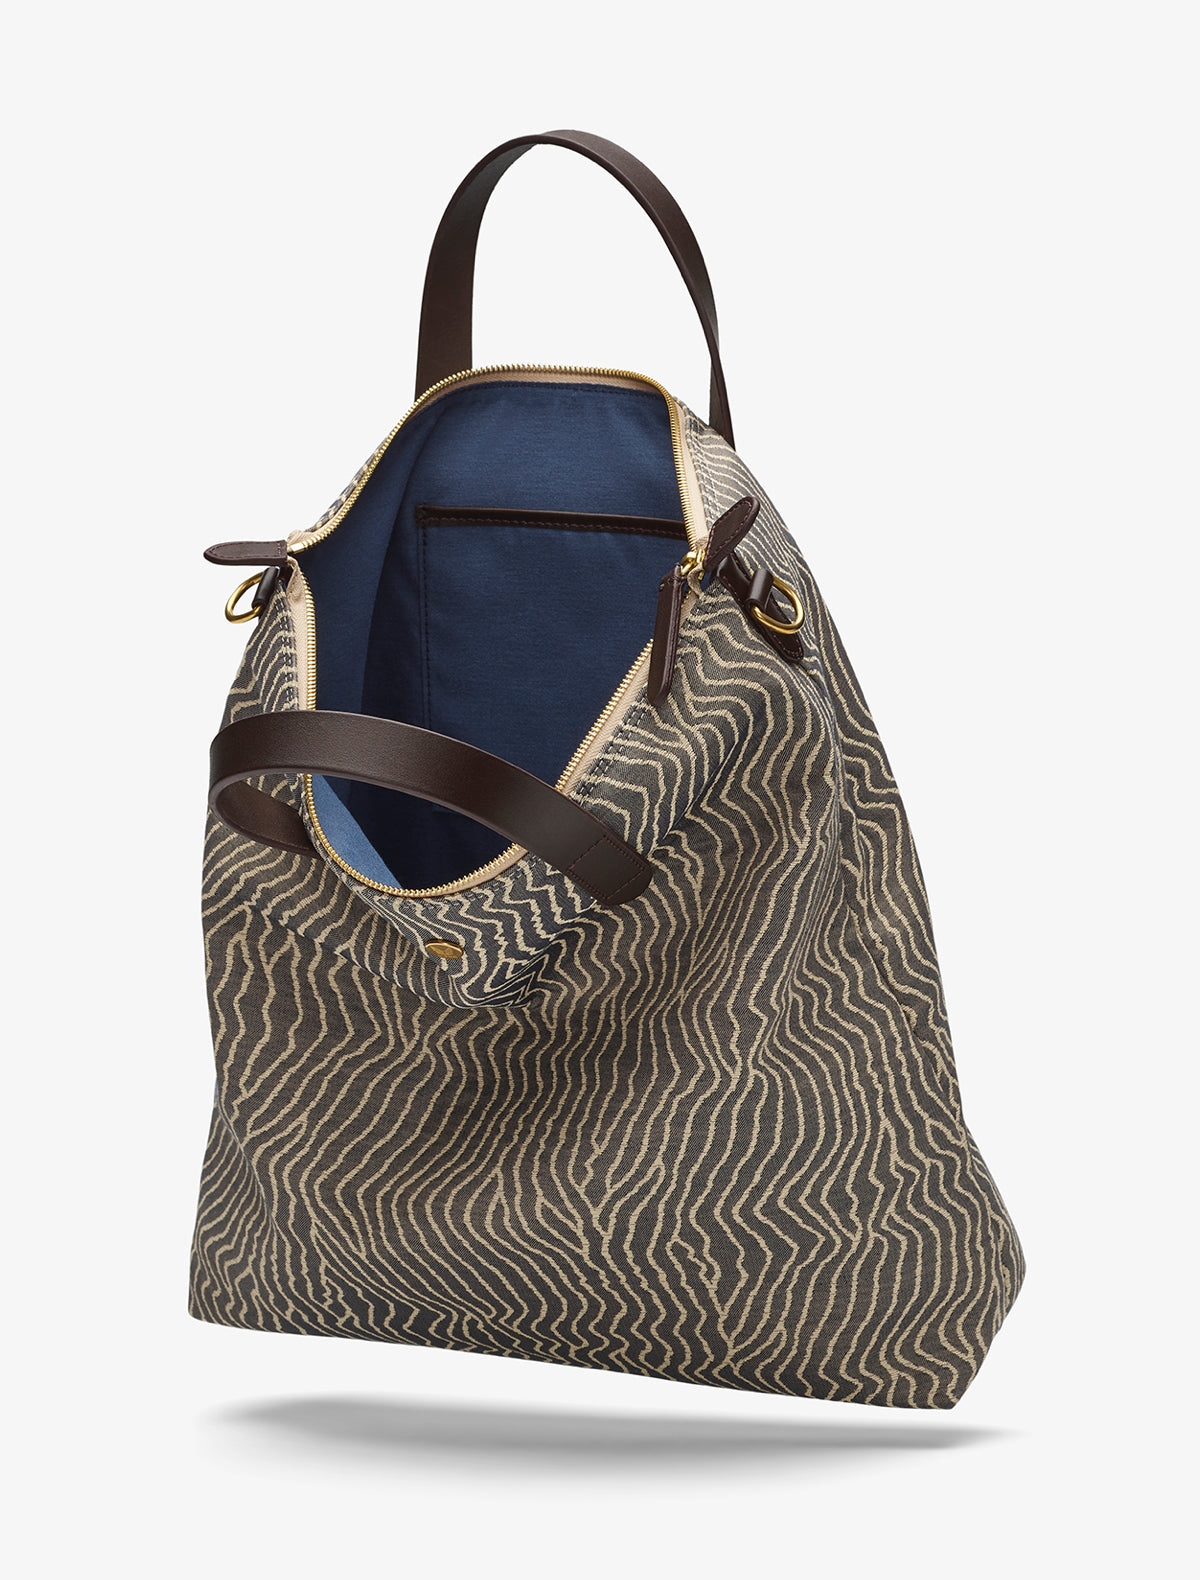 M/S Shopper - Sand waves/Dark brown description image